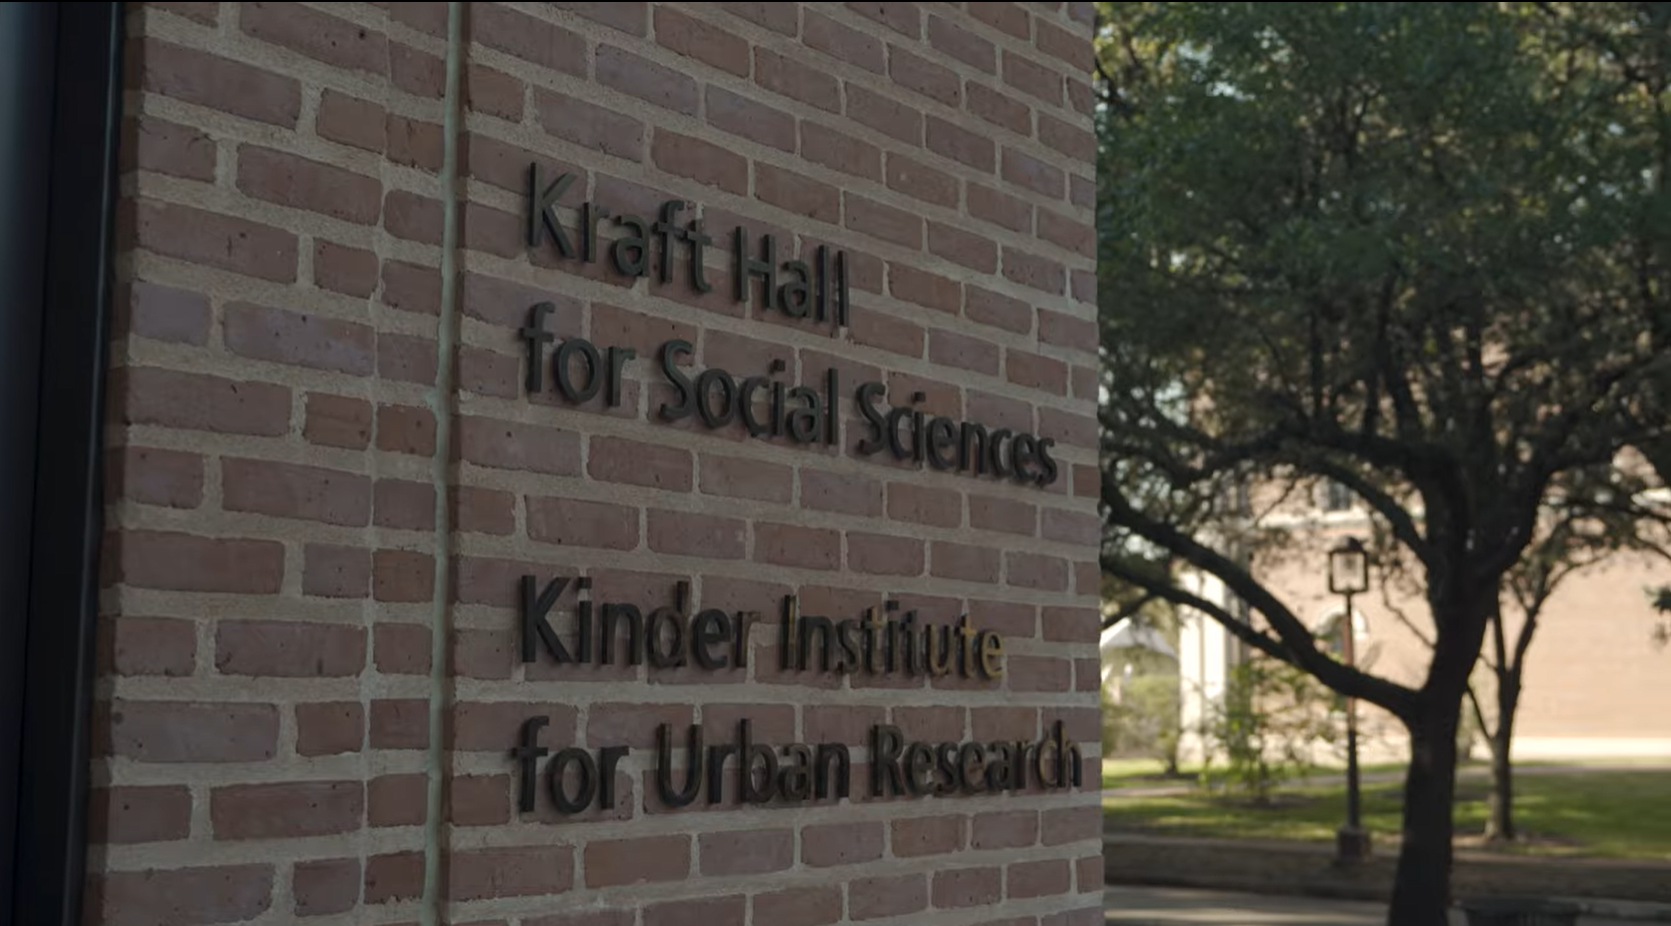 """Picture of a brick wall on the outside of Kraft Hall, with text saying """"Kraft Hall for Social Sciences,"""" and below that """"Kinder Institute for Urban Research."""""""